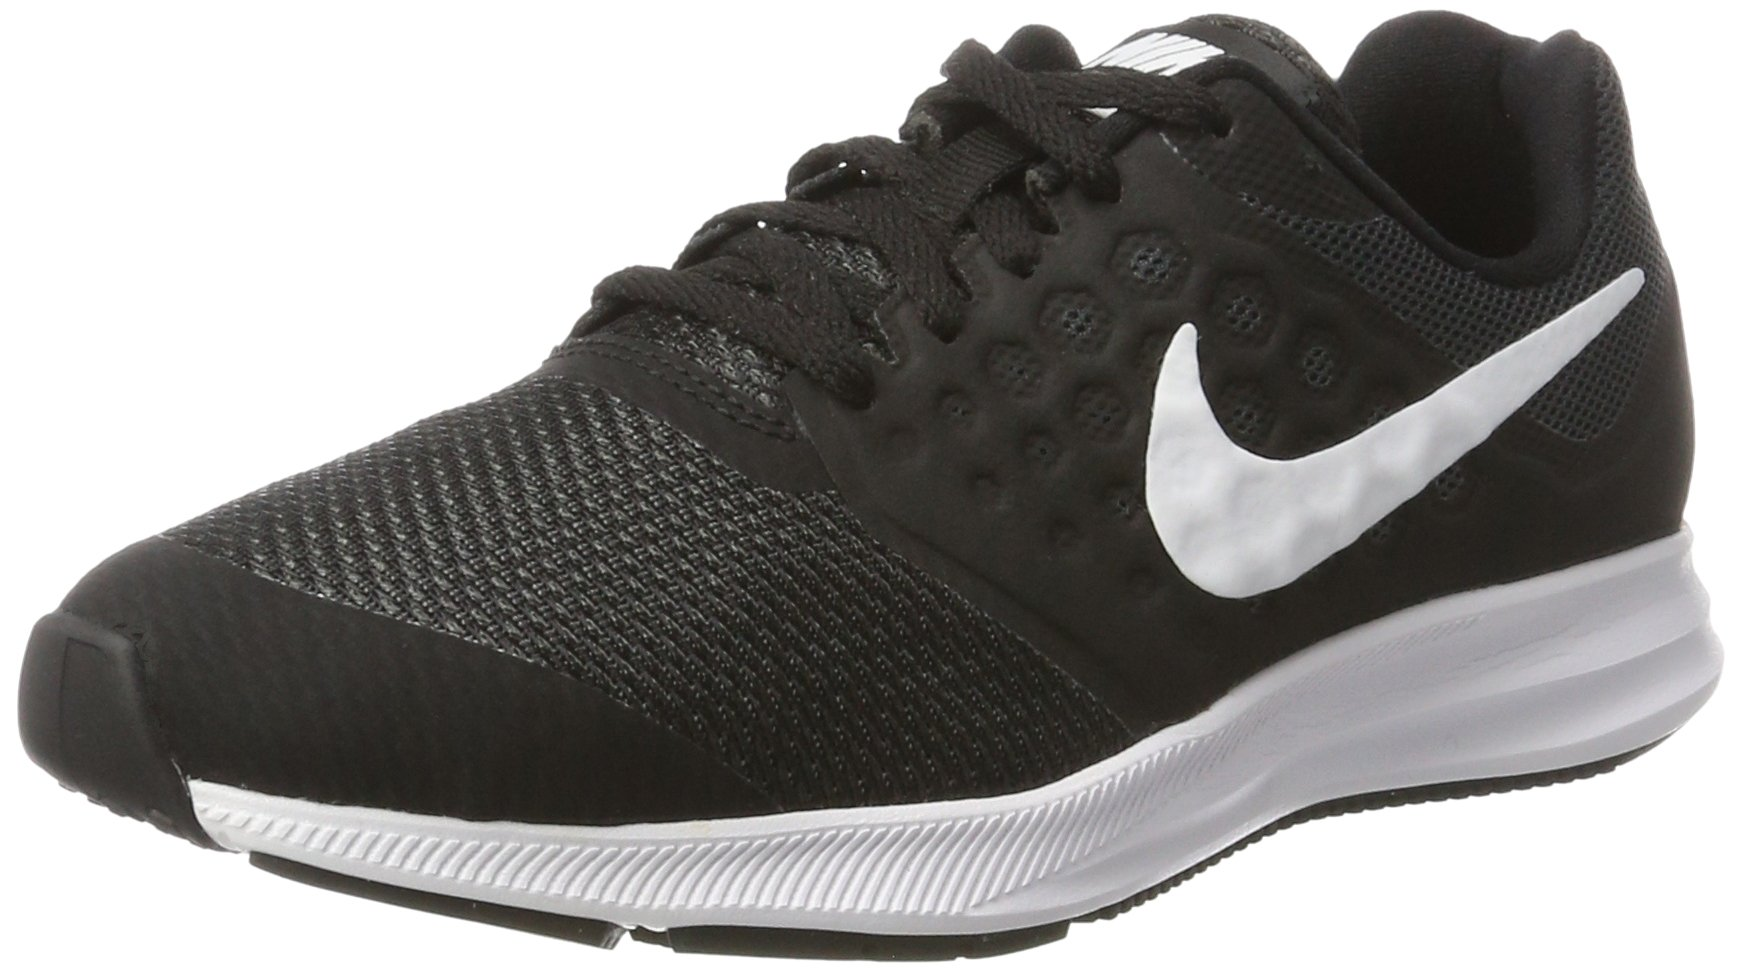 d538e3d21b99 Galleon - Nike Kids Downshifter 7 (GS) Black White Anthracite Size 4.5